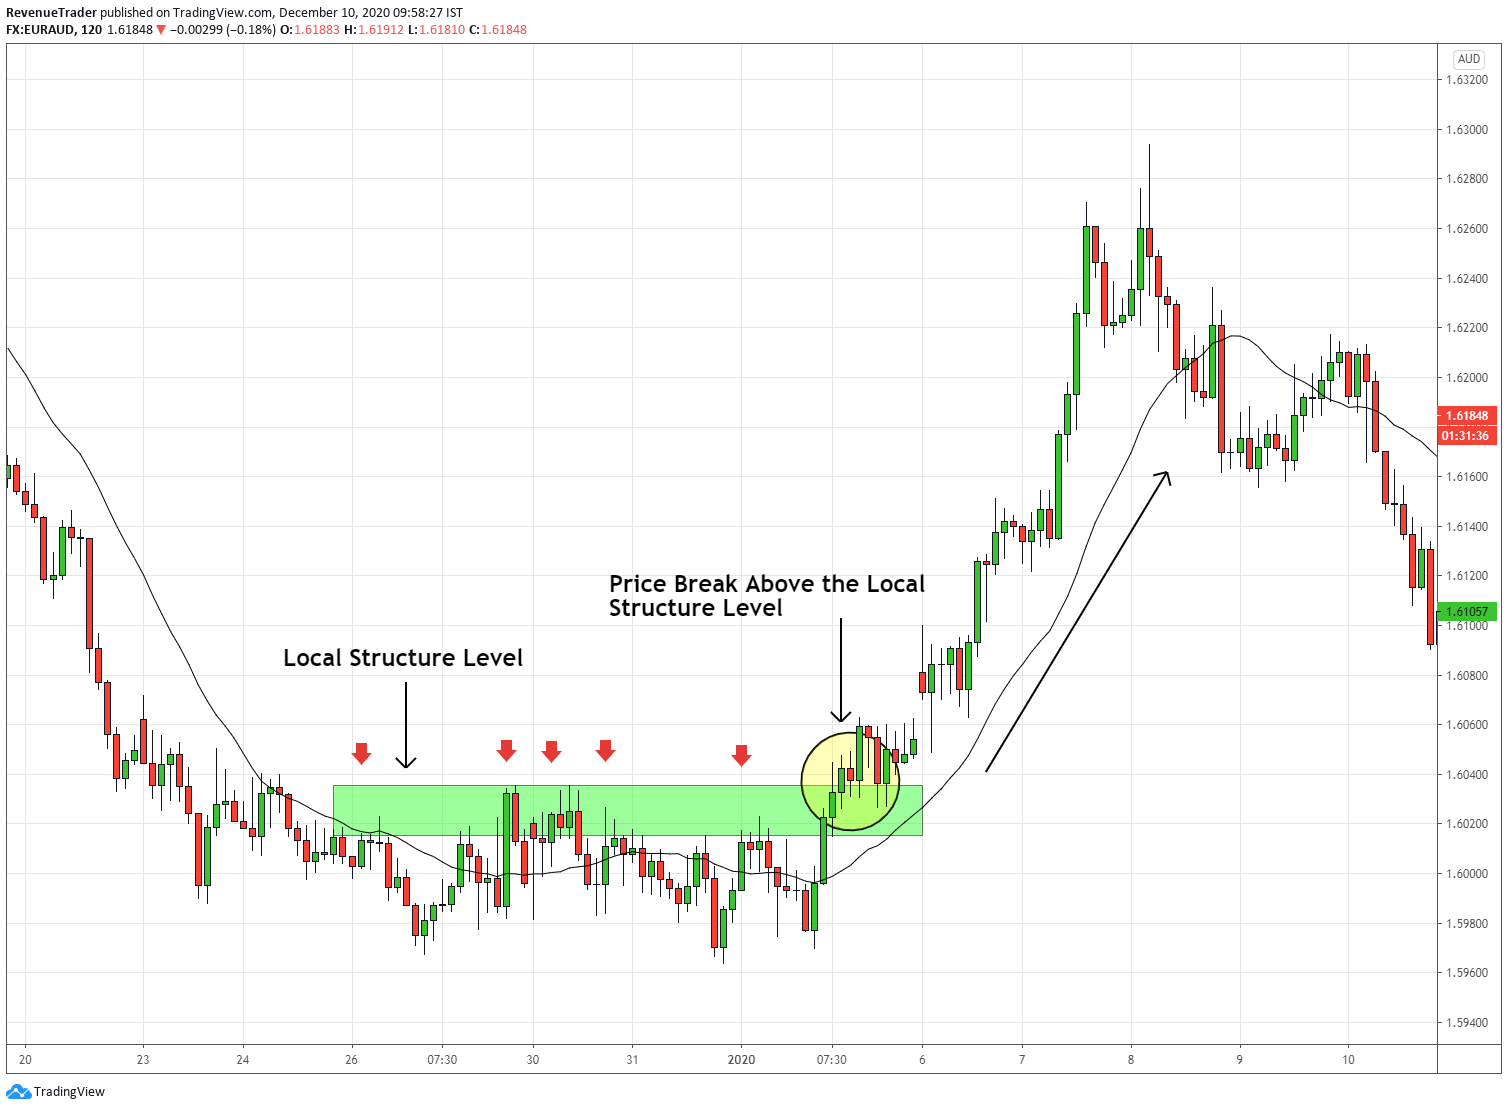 local structure level in downtrend